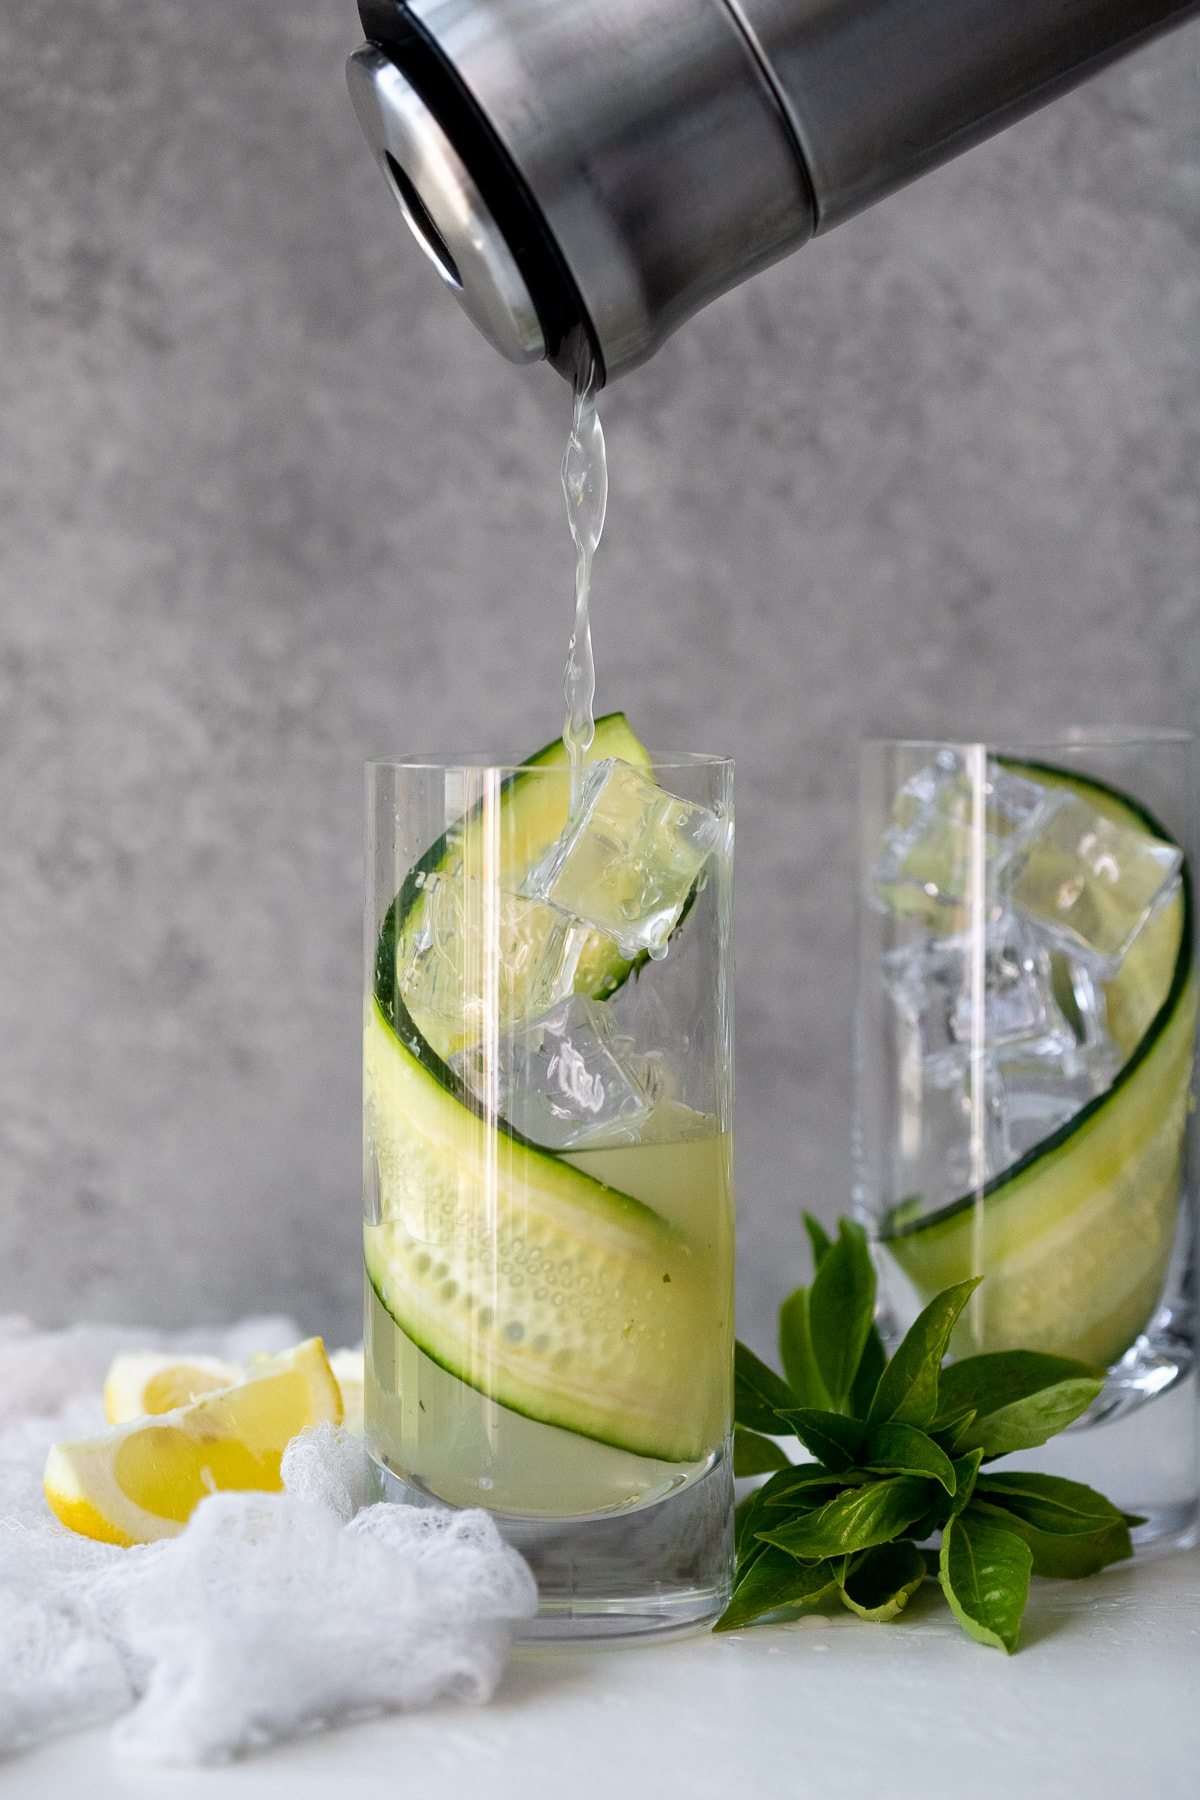 Process shot of liquid being poured out of a cocktail shaker into a highball glass filled with ice and a cucumber ribbon.